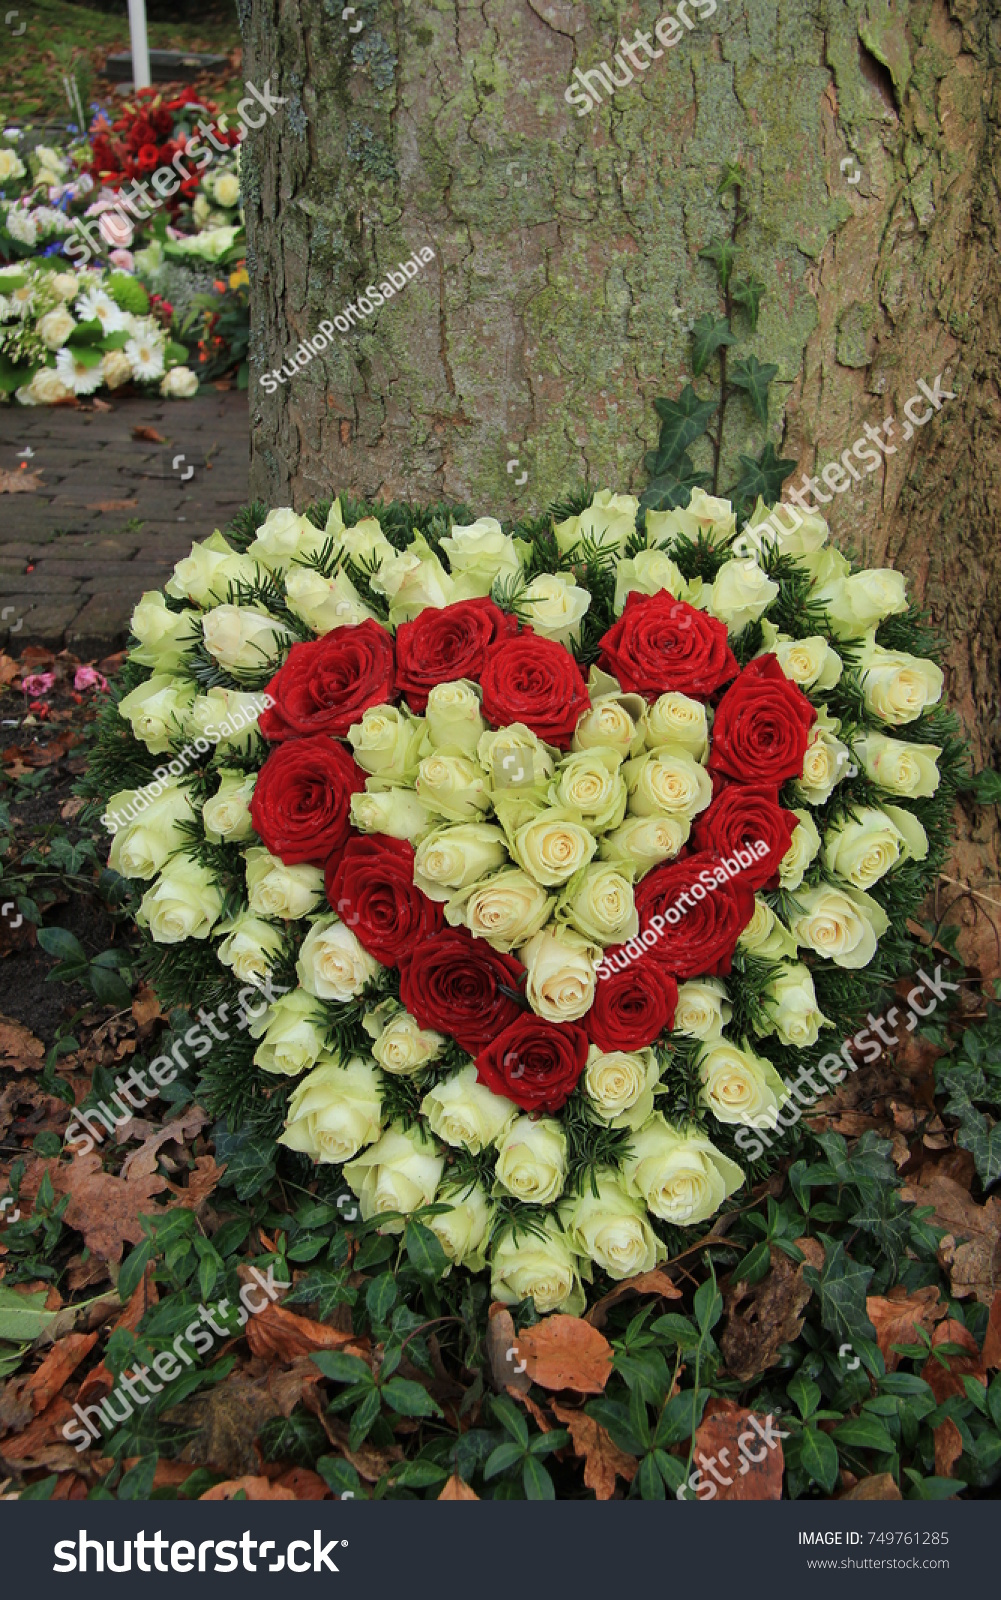 Red white heart shaped sympathy flowers stock photo download now red and white heart shaped sympathy flowers or funeral flowers near a tree izmirmasajfo